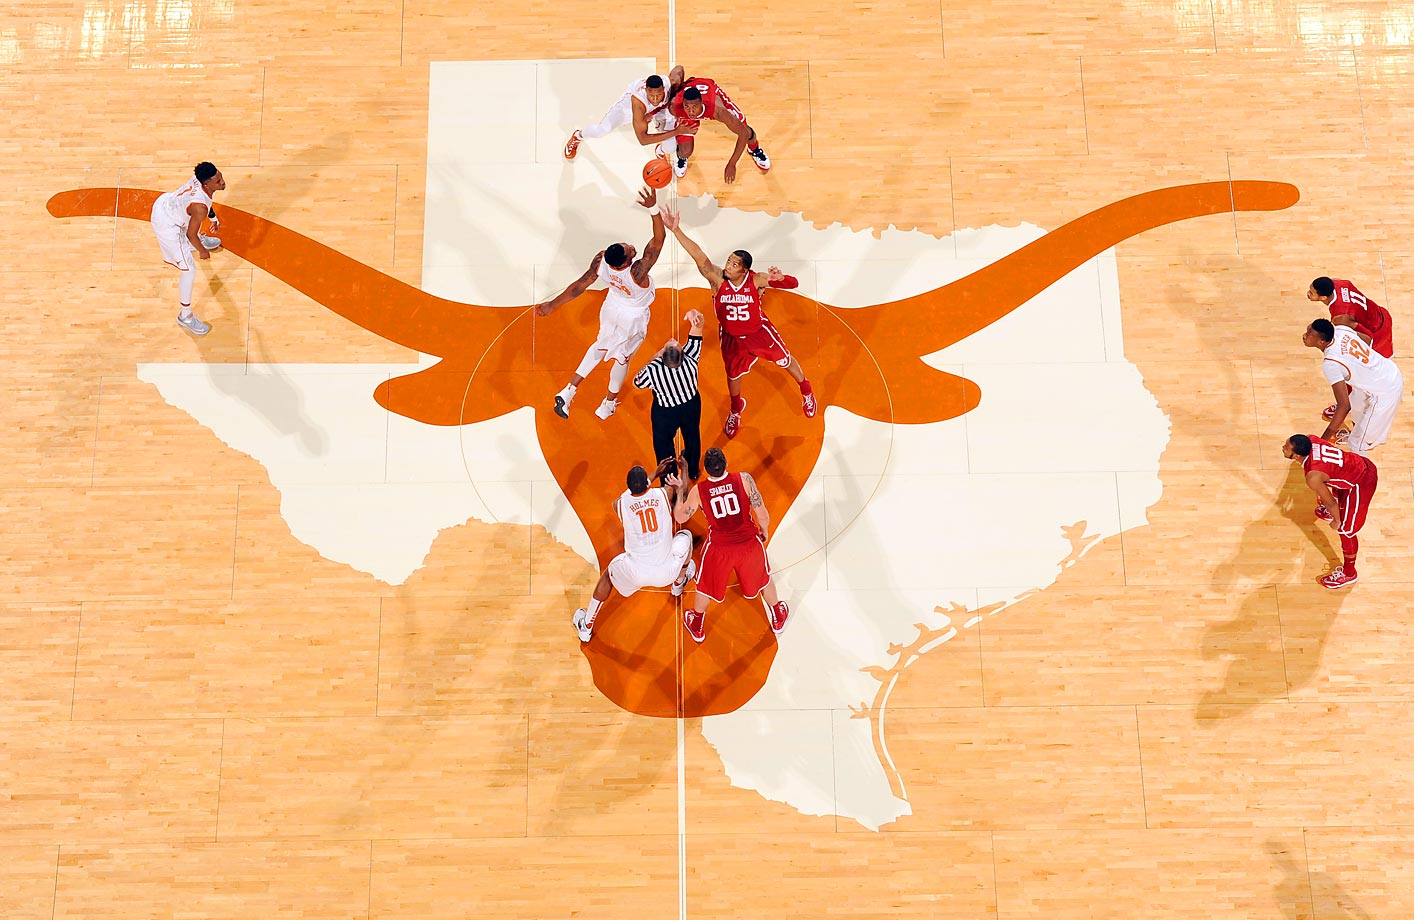 The University of Oklahoma and University of Texas tip-off to start their game in Austin.